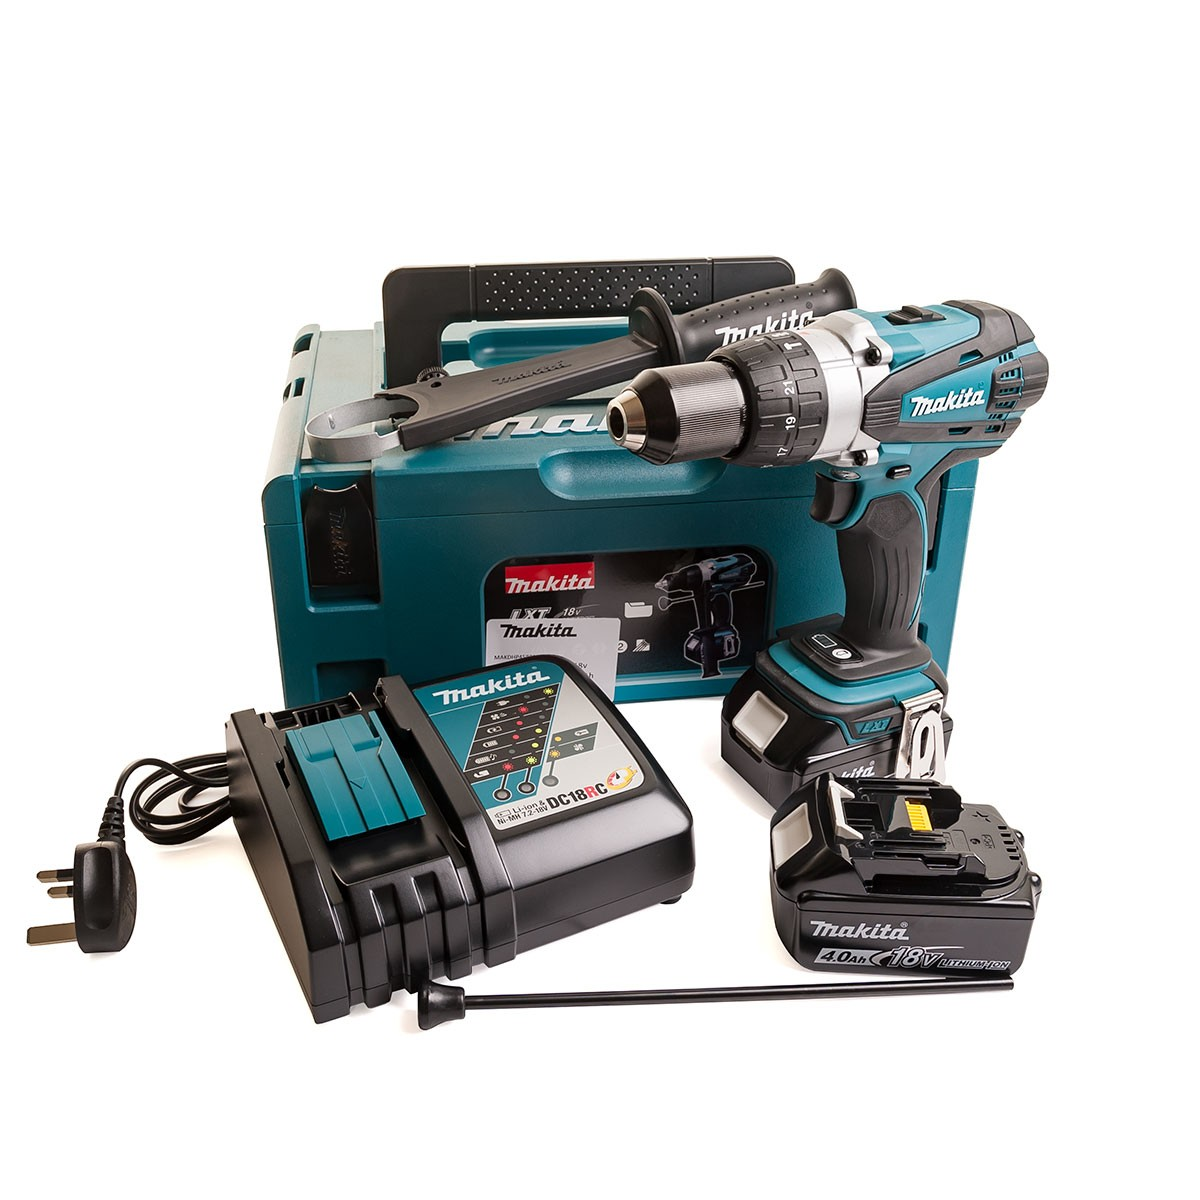 Makita DHP458RMJ 18v Combi Drill with 2 x 4.0Ah Batteries + Charger in Makpac Case